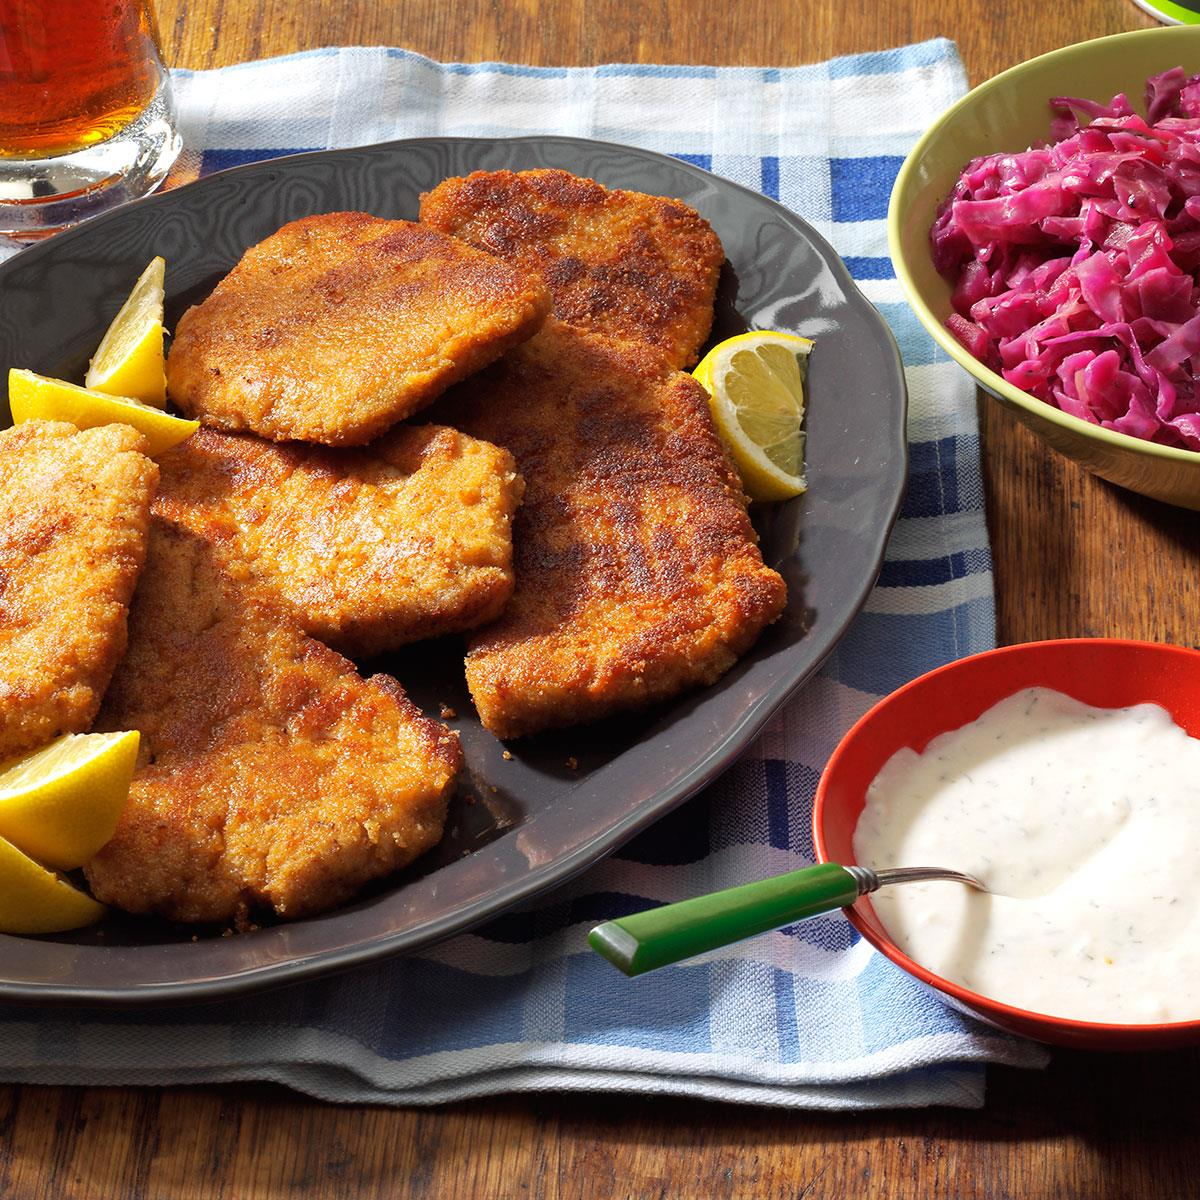 Pork Schnitzel - for those who are very hungry 13